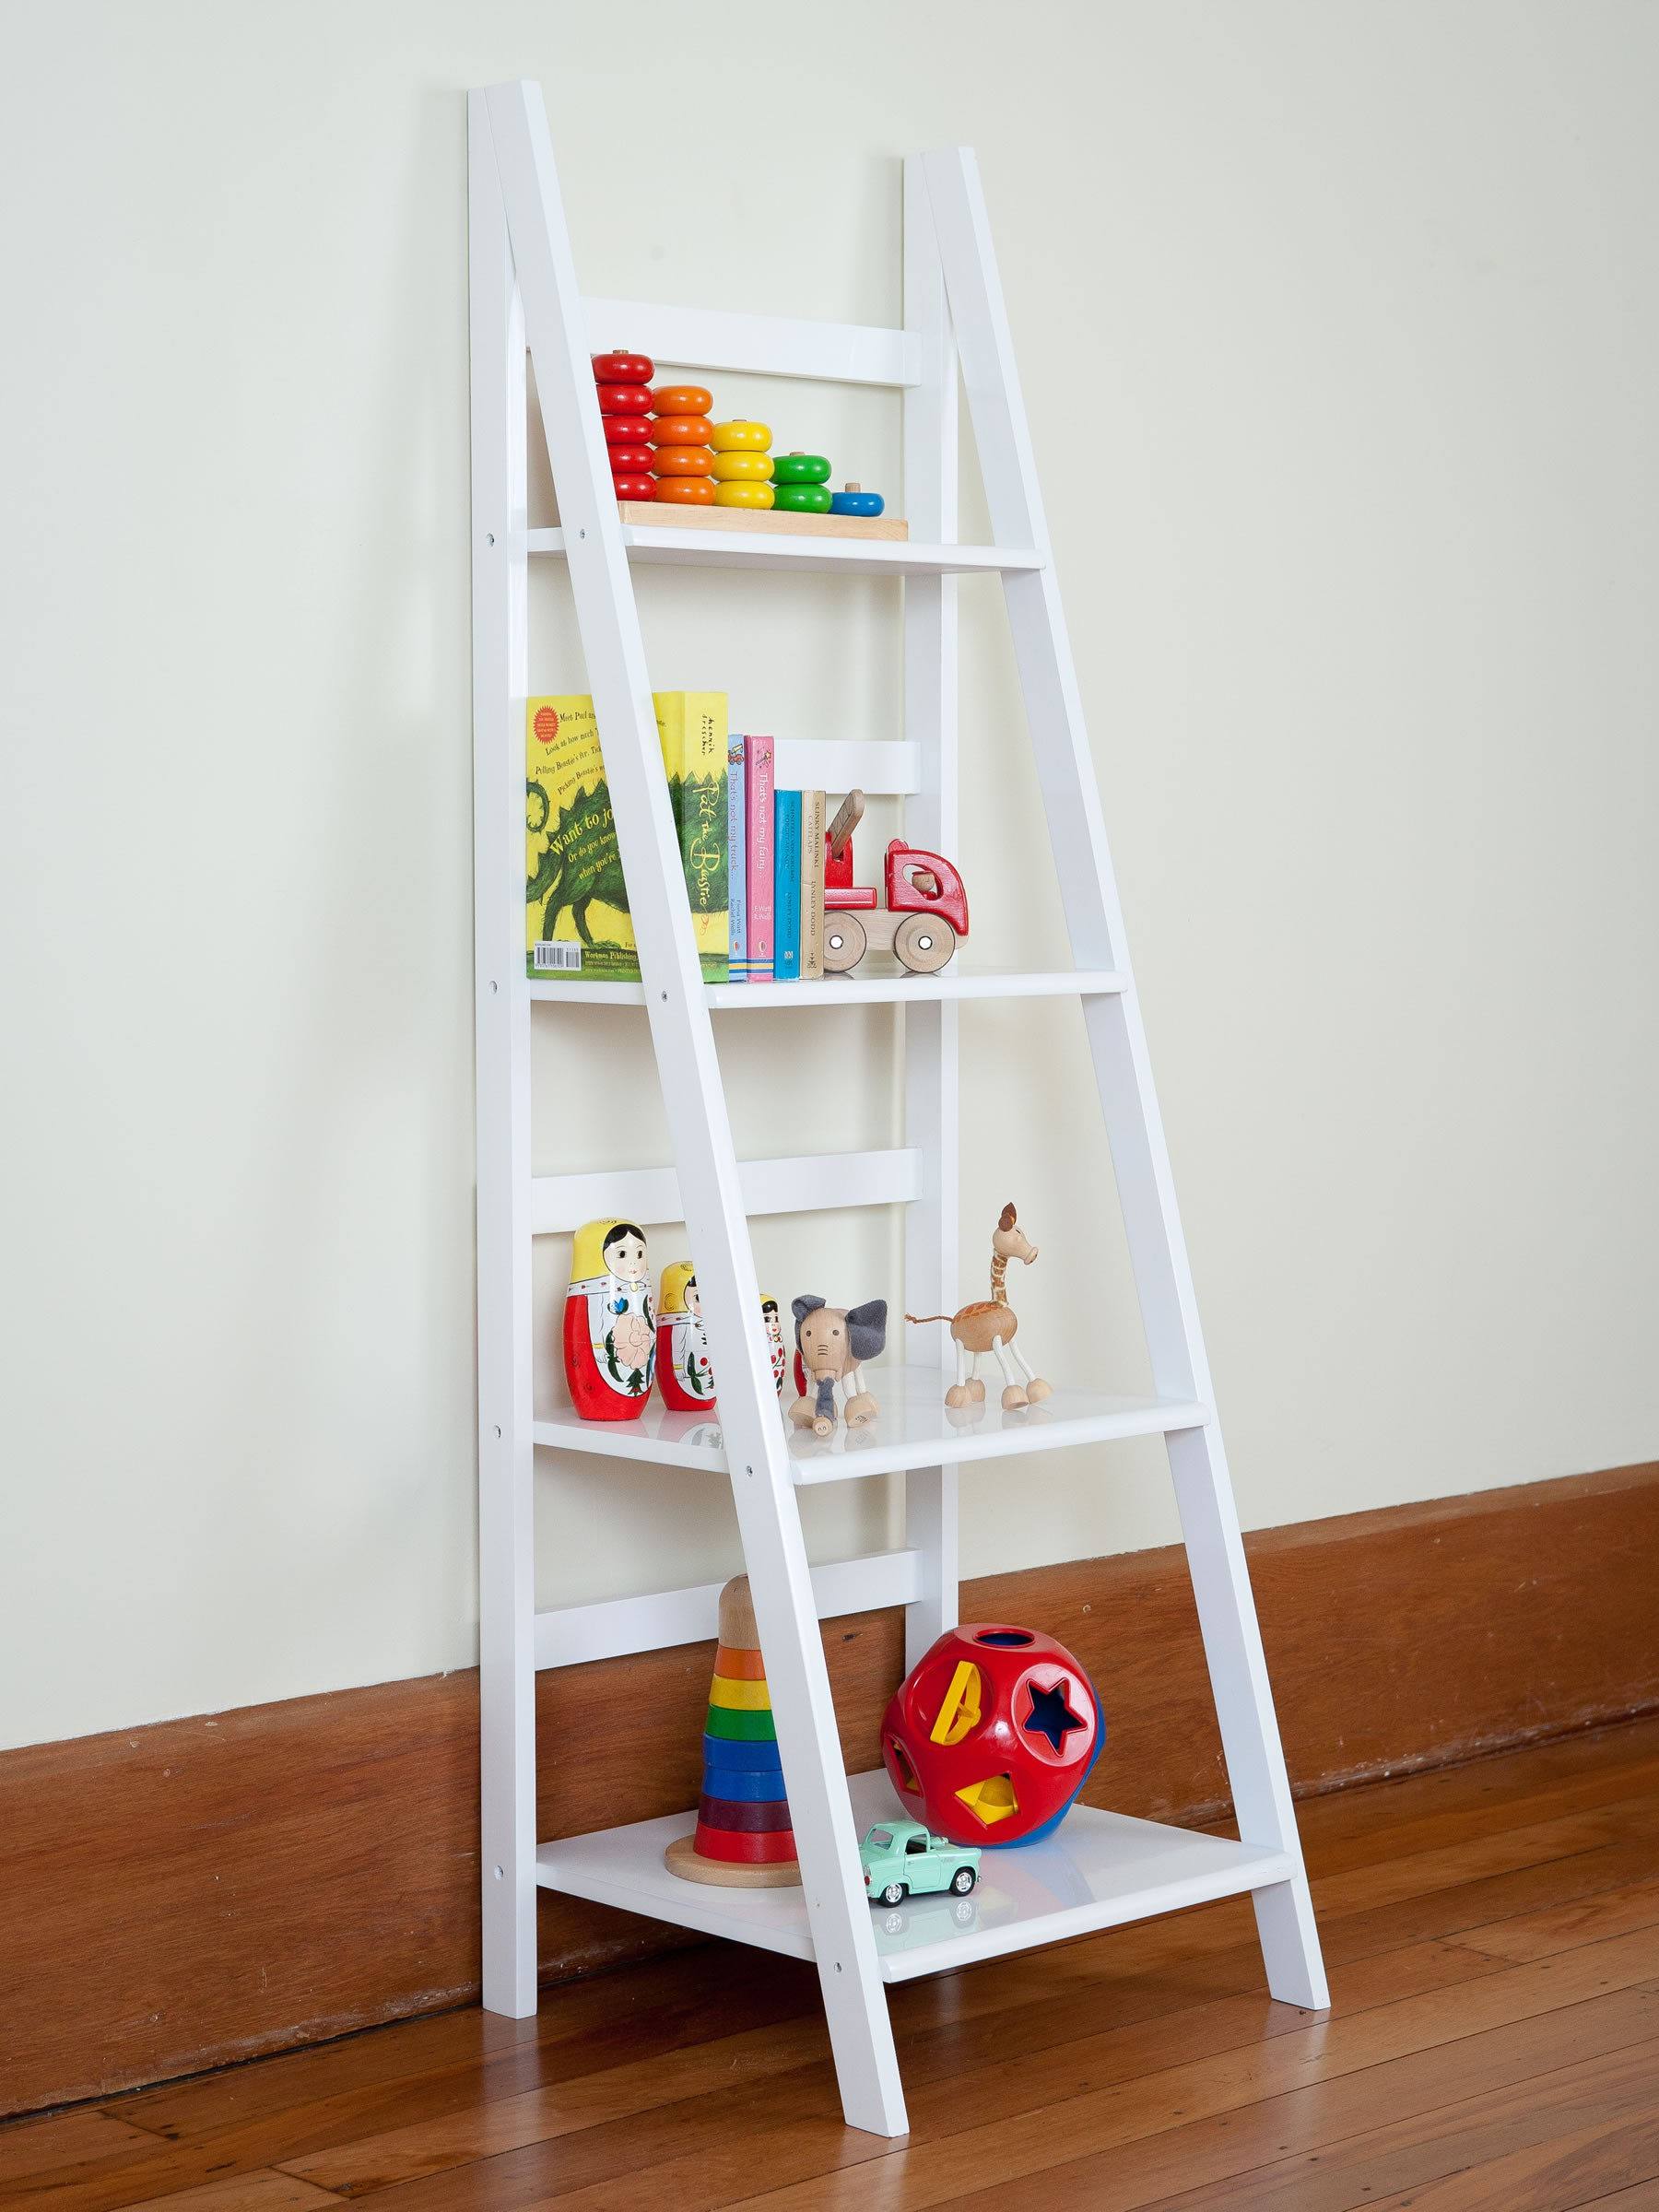 ladder bookshelf in white on wooden floor matched with white wall for interior decor ideas